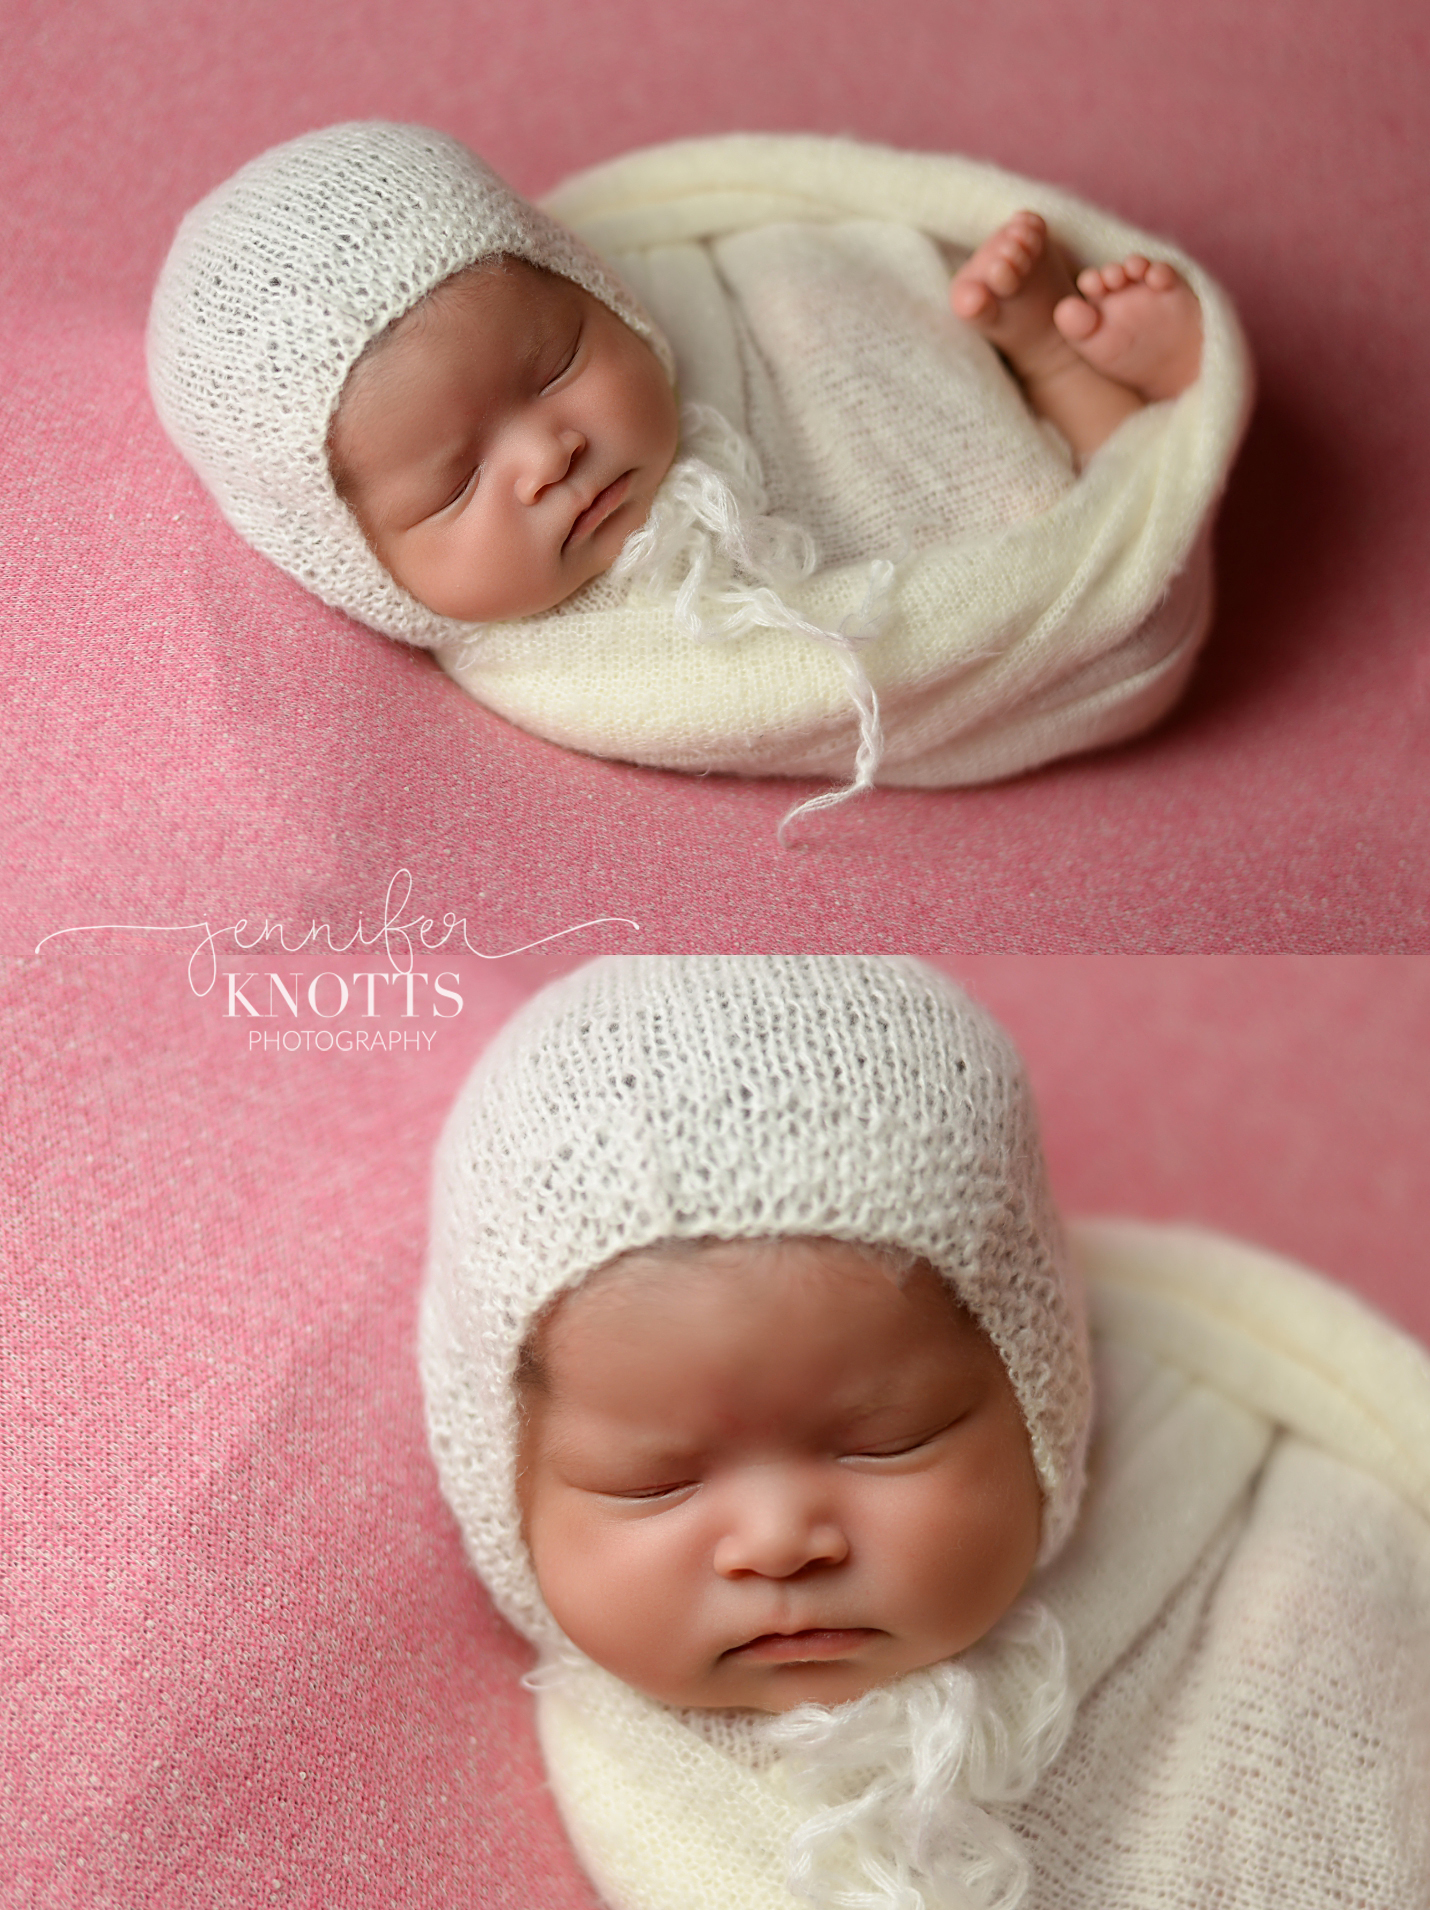 baby girl sleeps on pink fabric wearing white bonnet and wrap during Wilmington newborn session